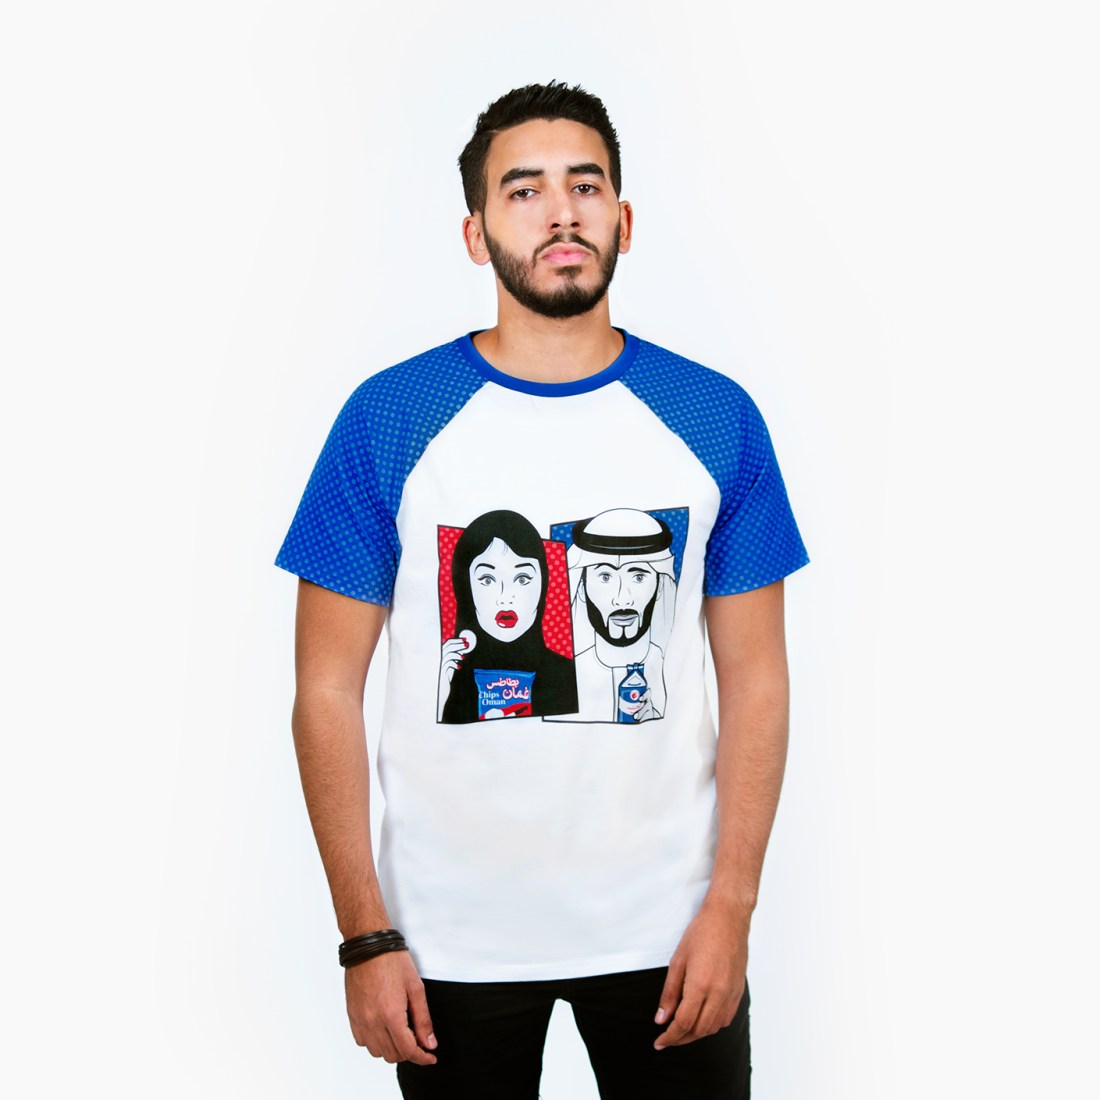 Perfect Match T-shirt by La Come Di